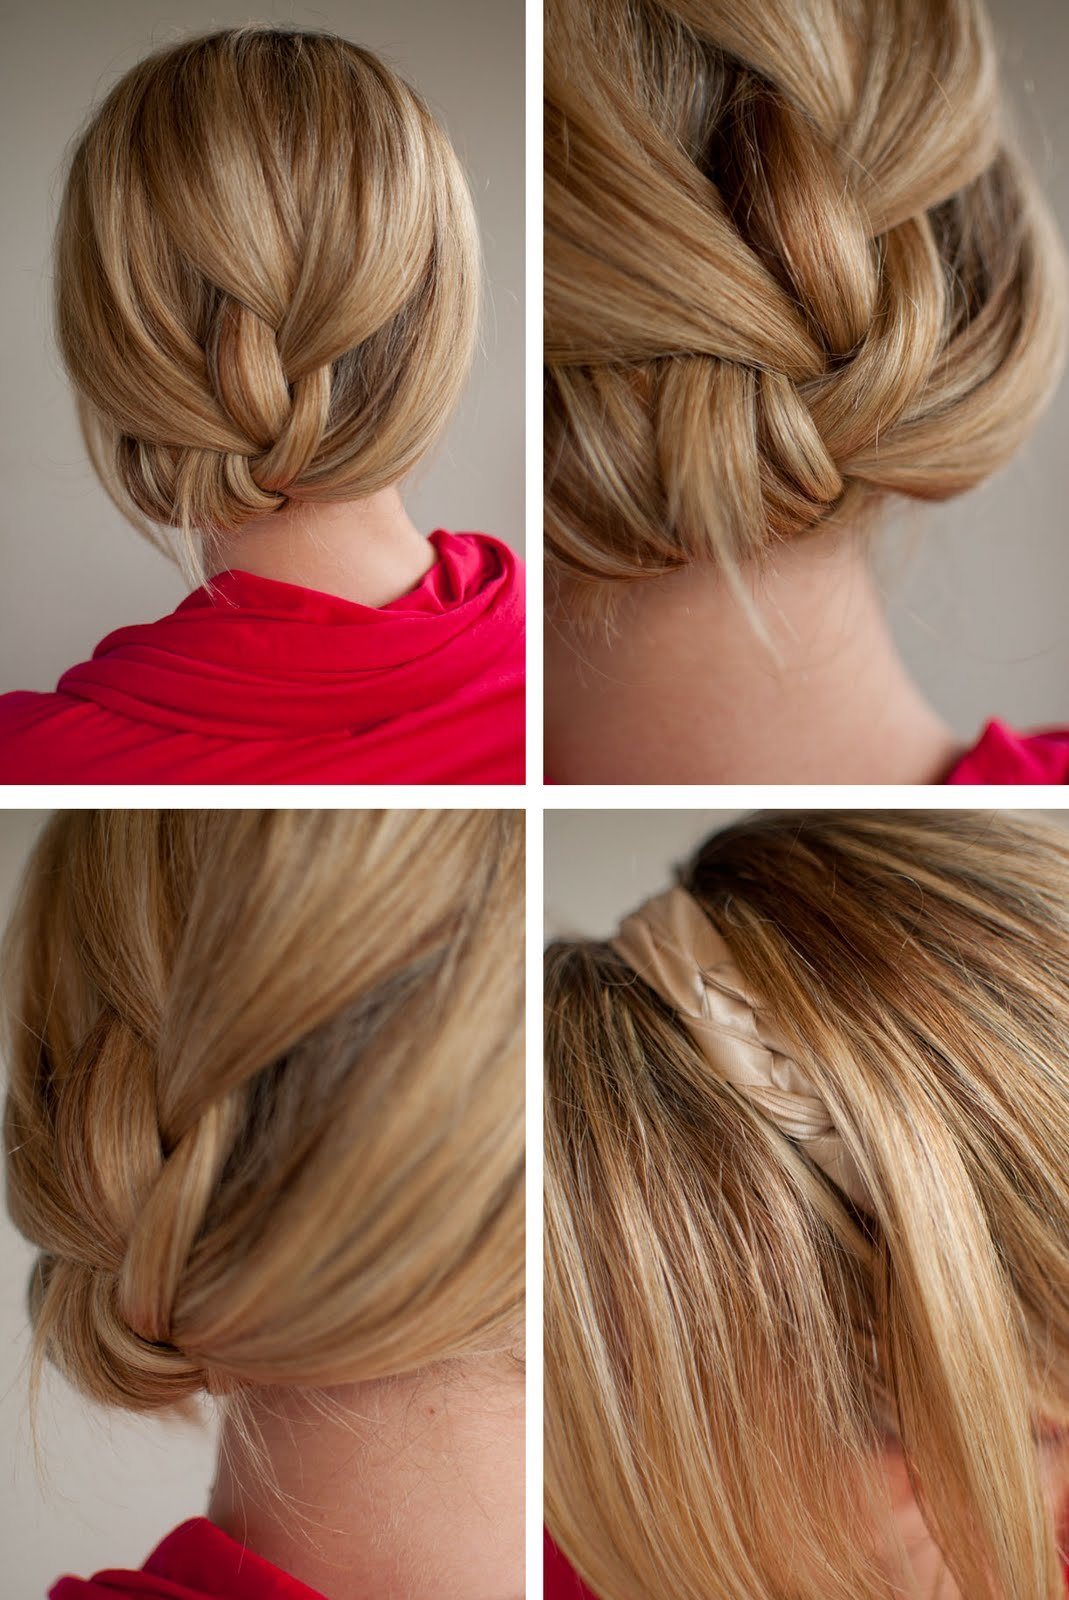 The Best Hairstyles Days Of Twist Pin Hairstyles Zinglovefashion Pictures